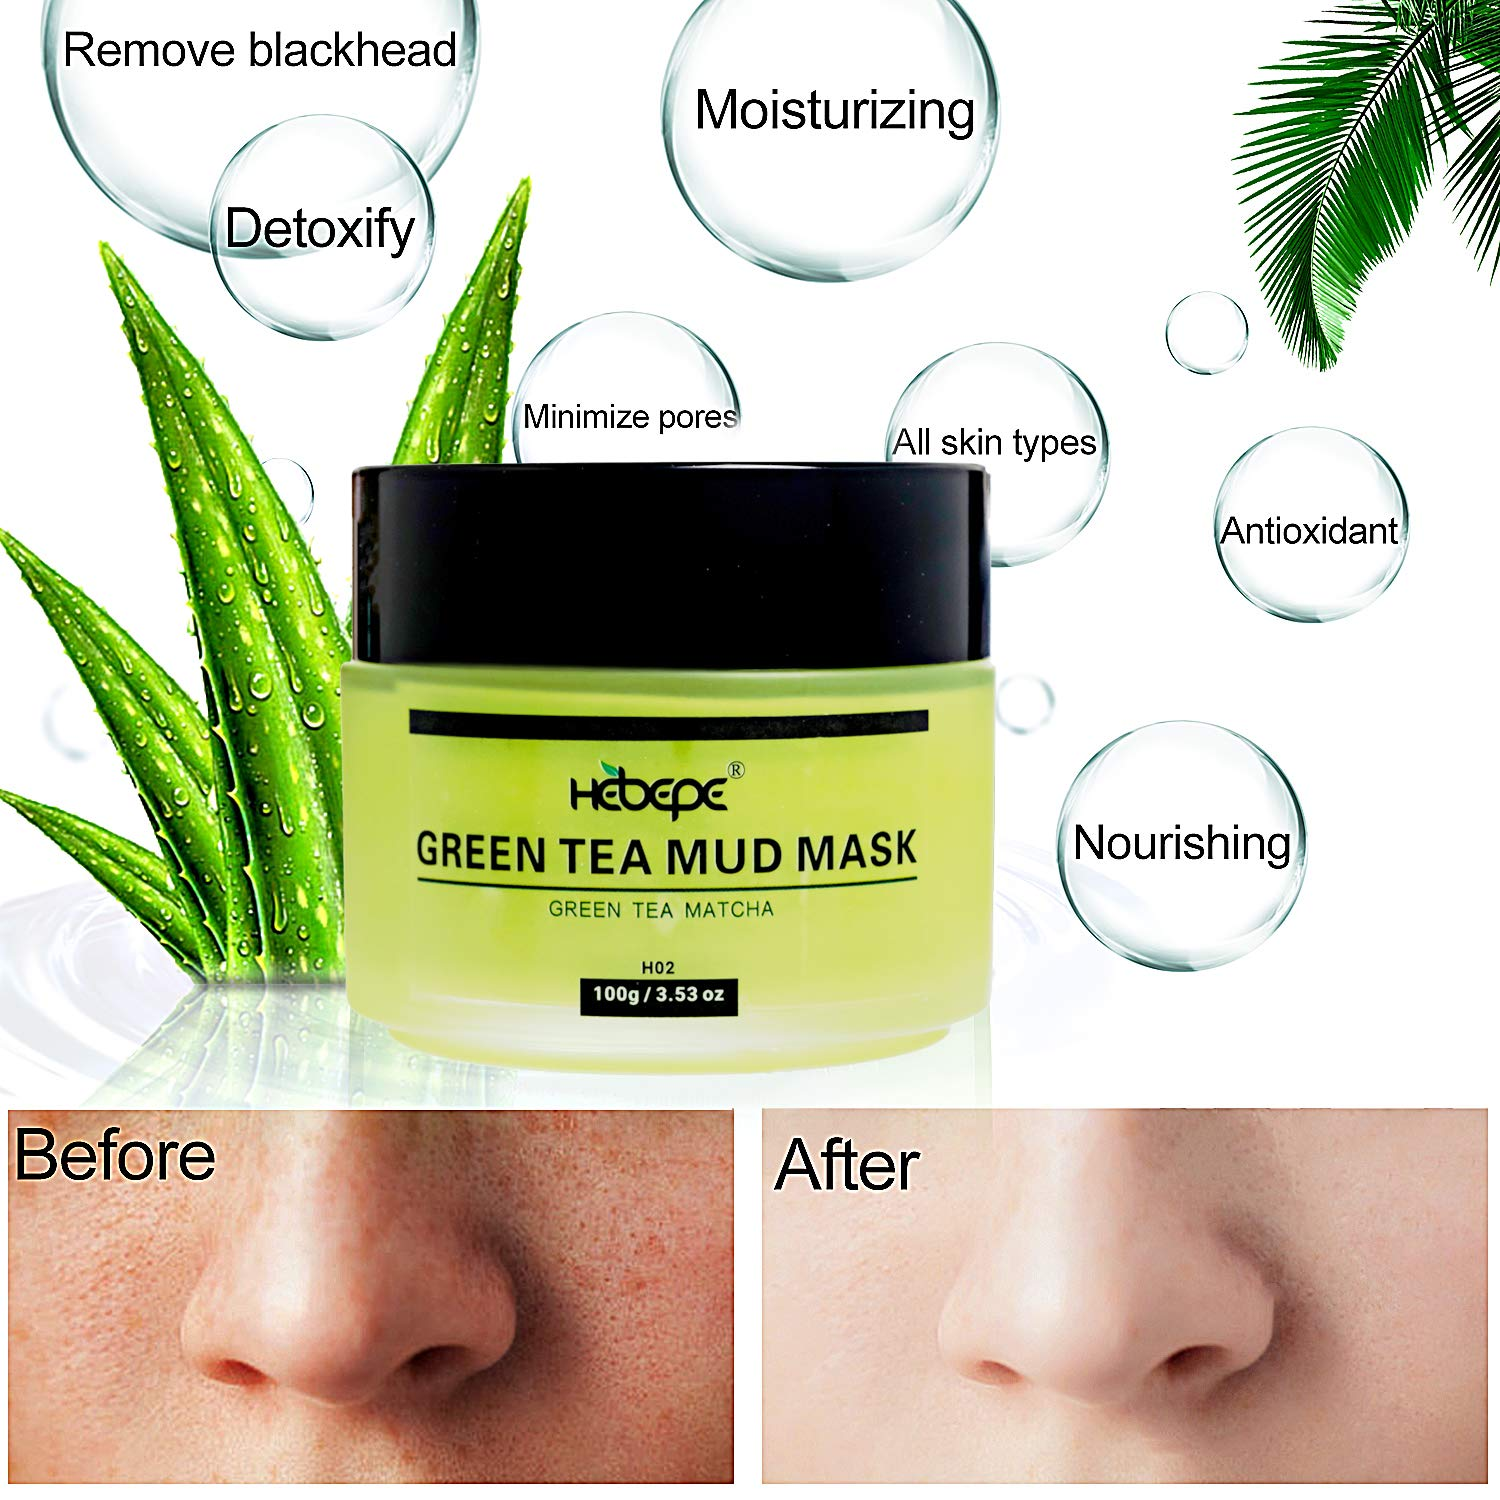 Hebepe Matcha Green Tea Facial Detox Mud Mask with Aloe Vera, Deep Cleaning, Hydrating, Detoxing, Healing, and Relaxing Volcanic Clay Facial Mask : Beauty & Personal Care